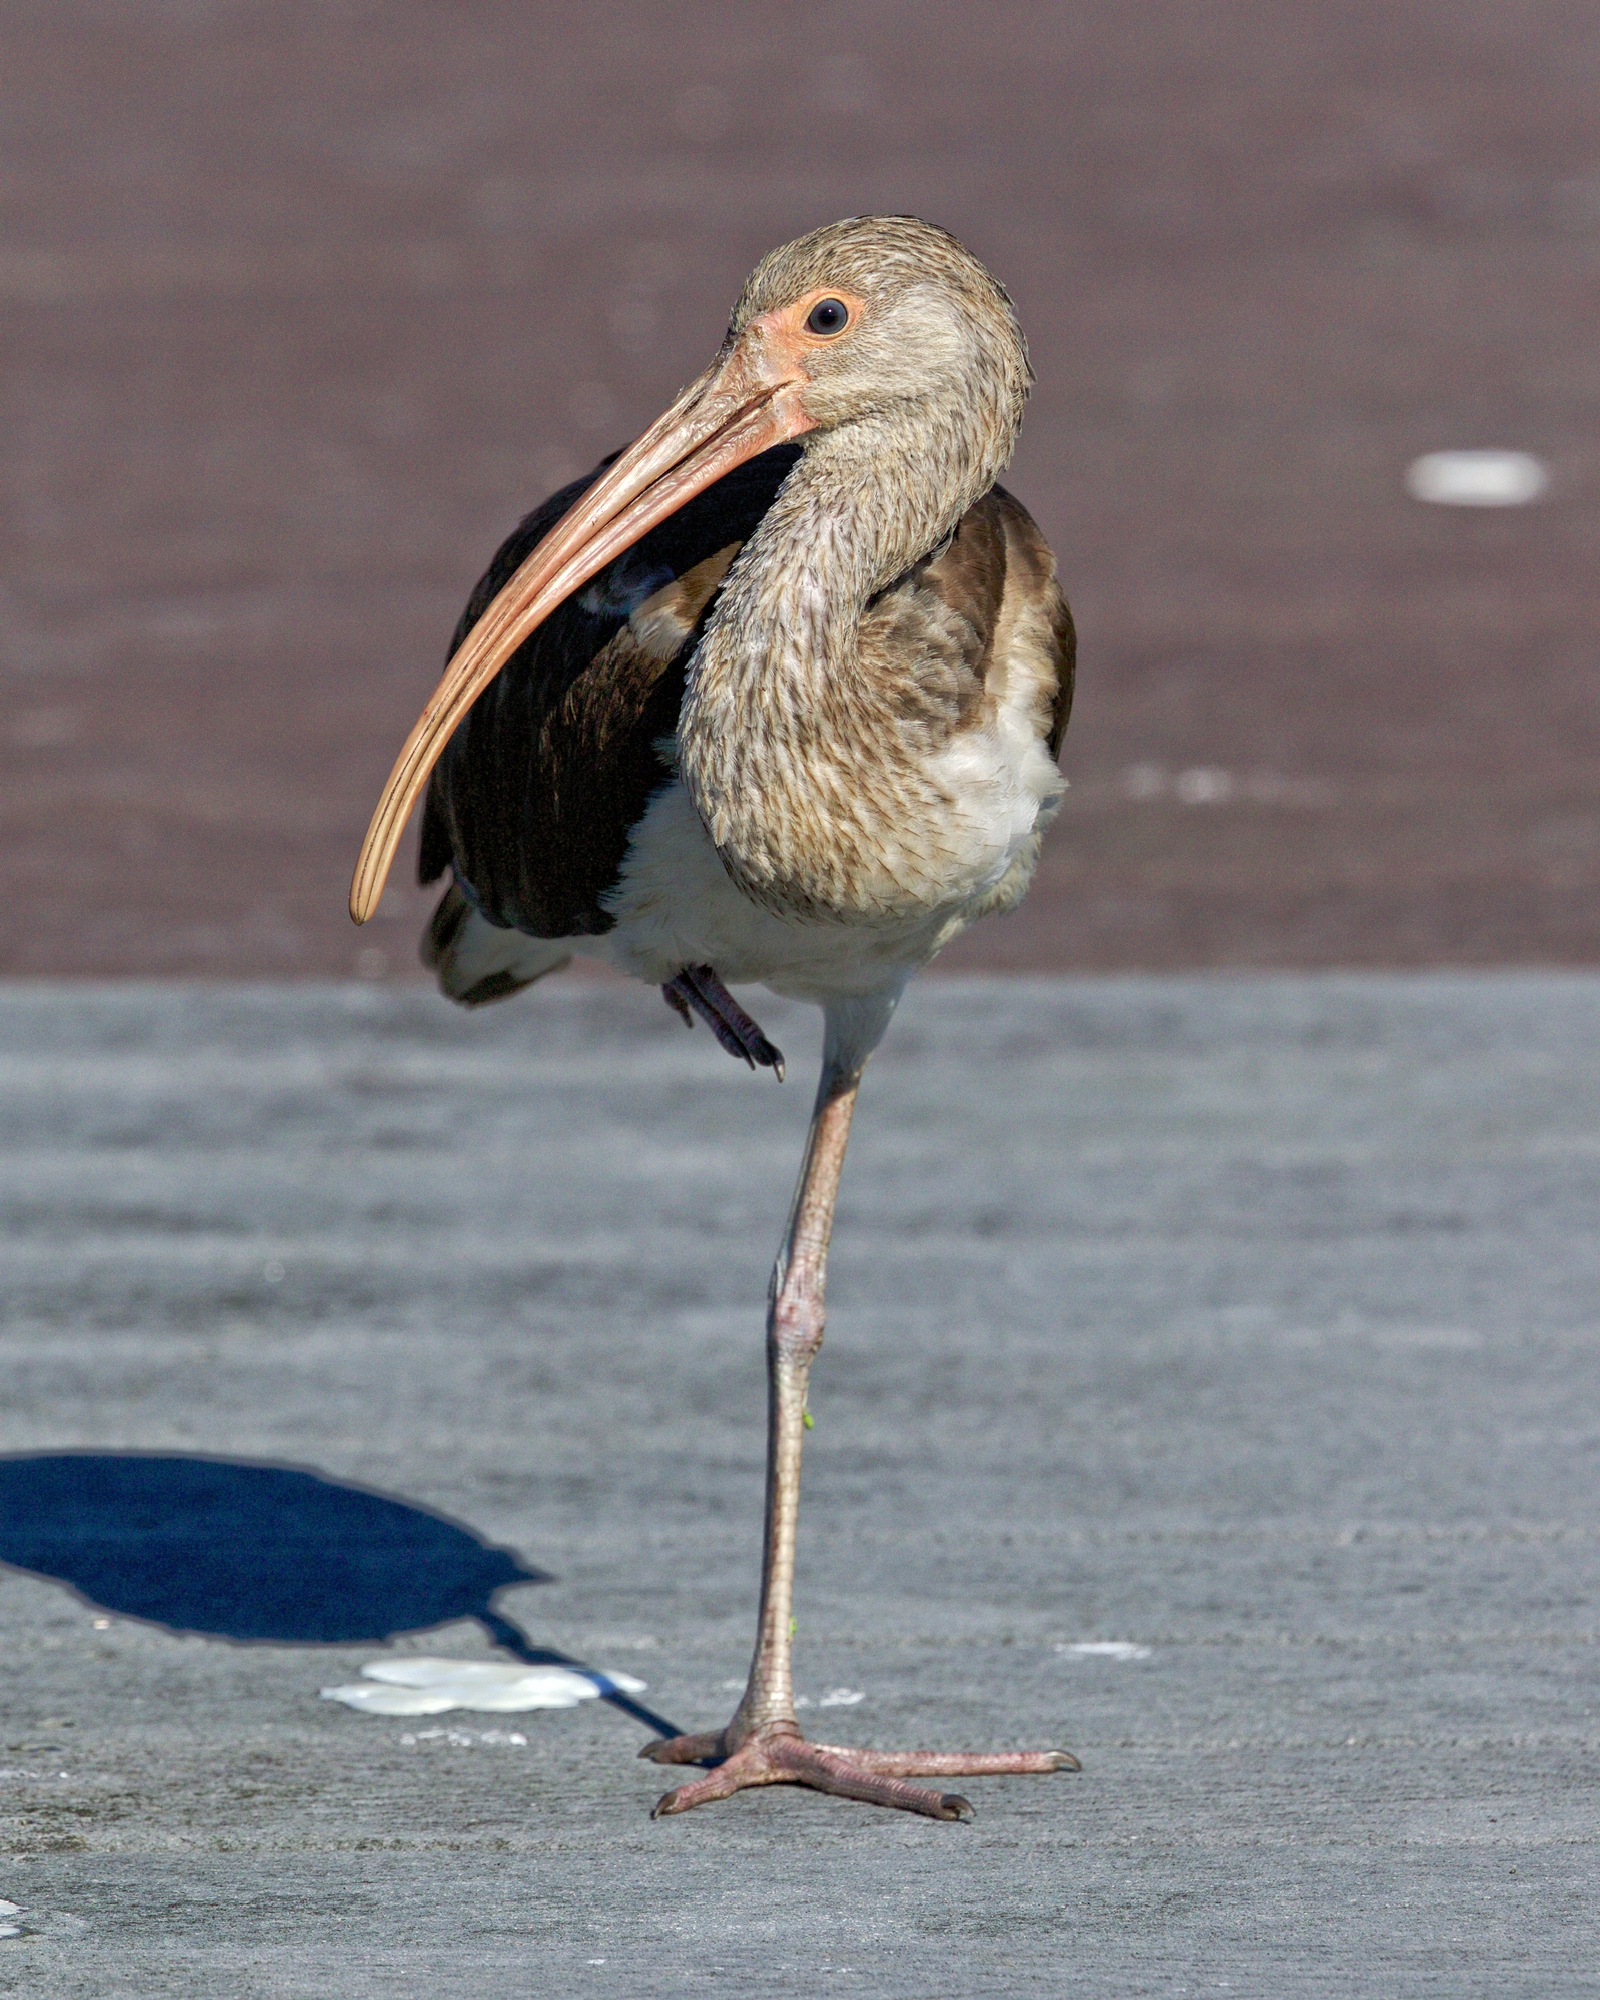 The Ibis determine I am not threat, relaxes and pulls up a leg to rest..that is not snow on the dock though.